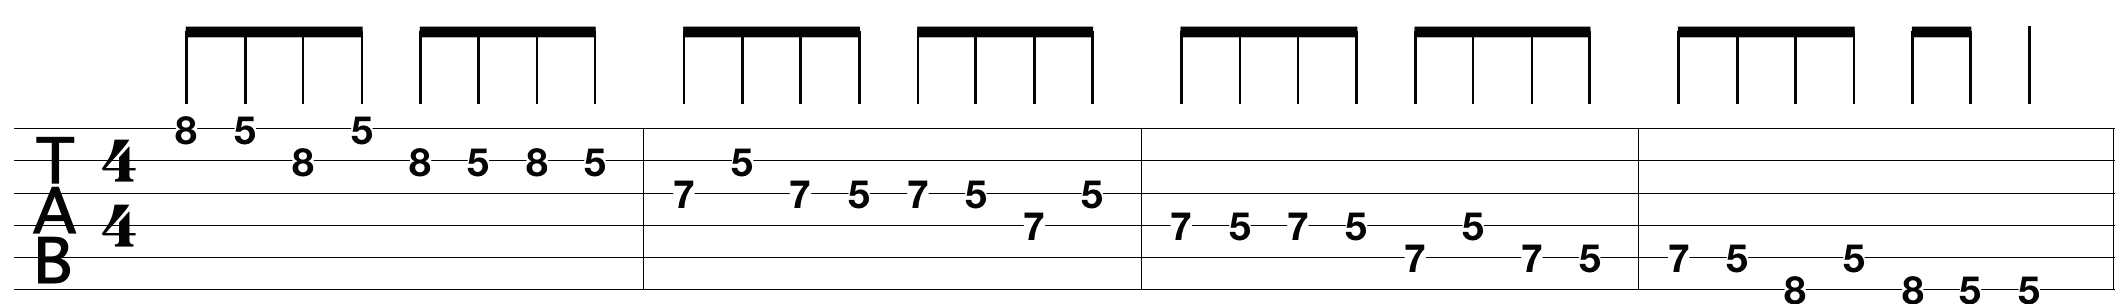 how to play guitar tabs easy